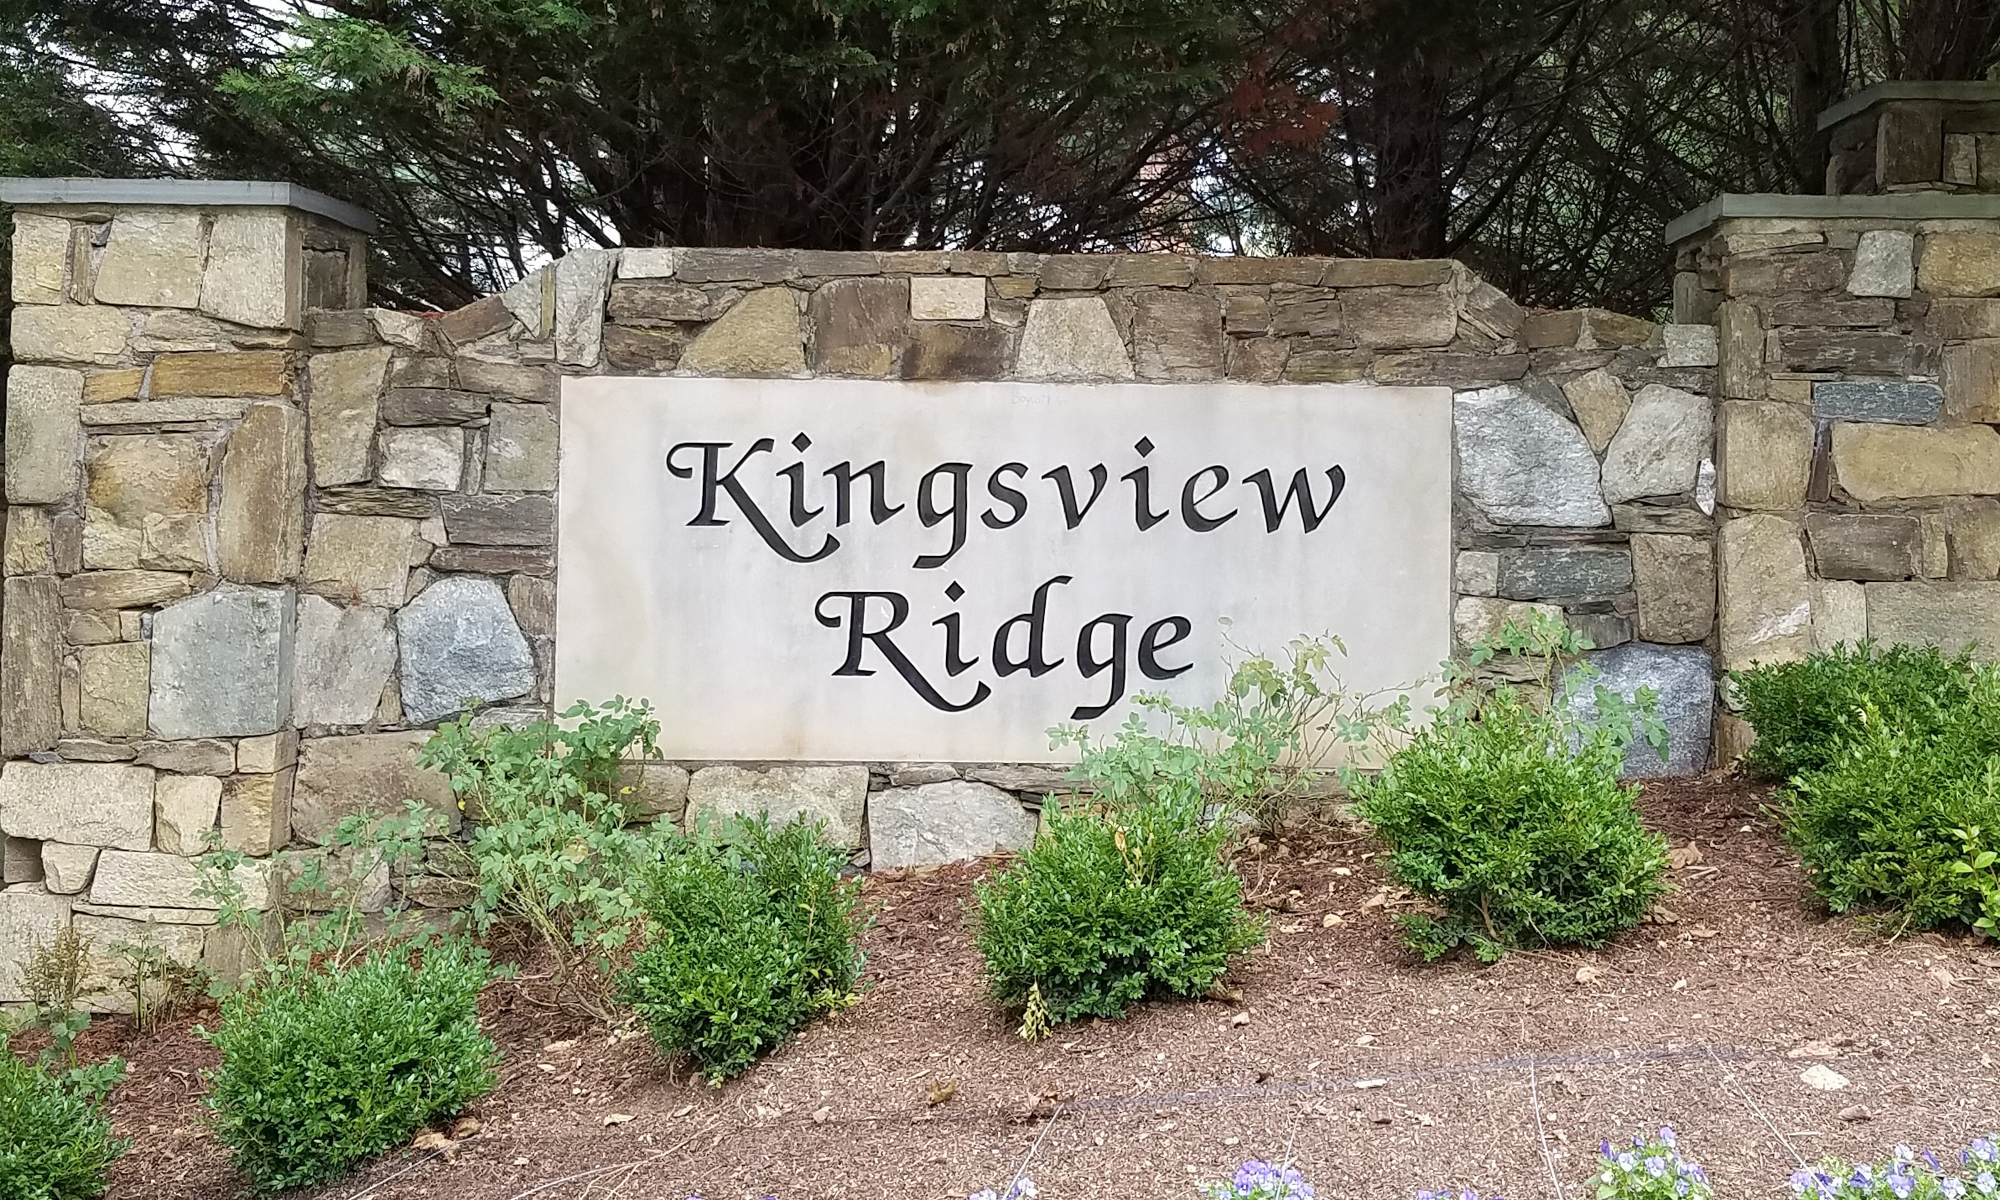 Kingsview Ridge, Germantown, Maryland